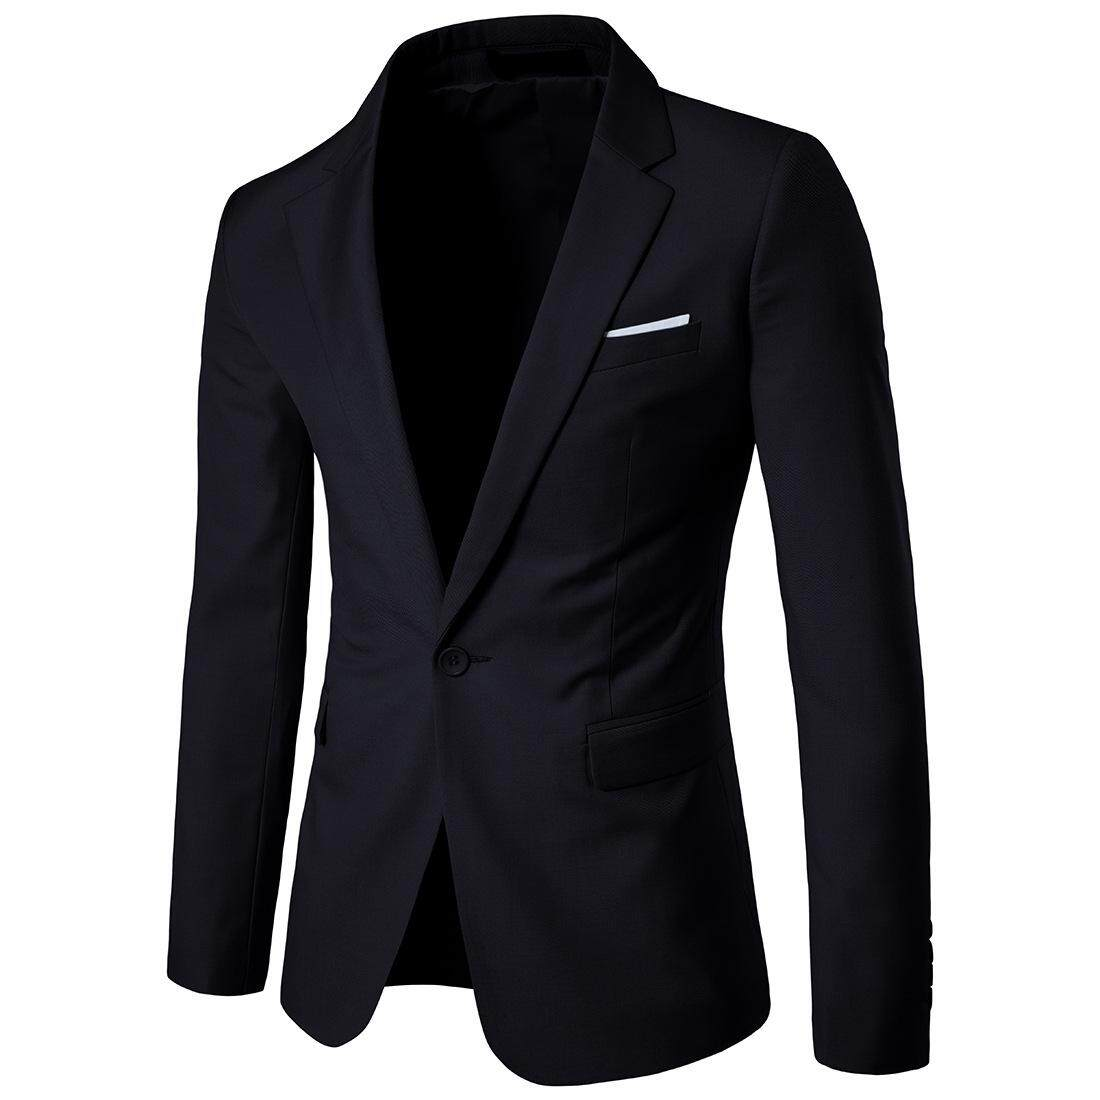 bff587457d Men Blazer 2018 New Suit Men Casual Jacket Latest Coat Designs Blazers Men  Clothing Plus Size